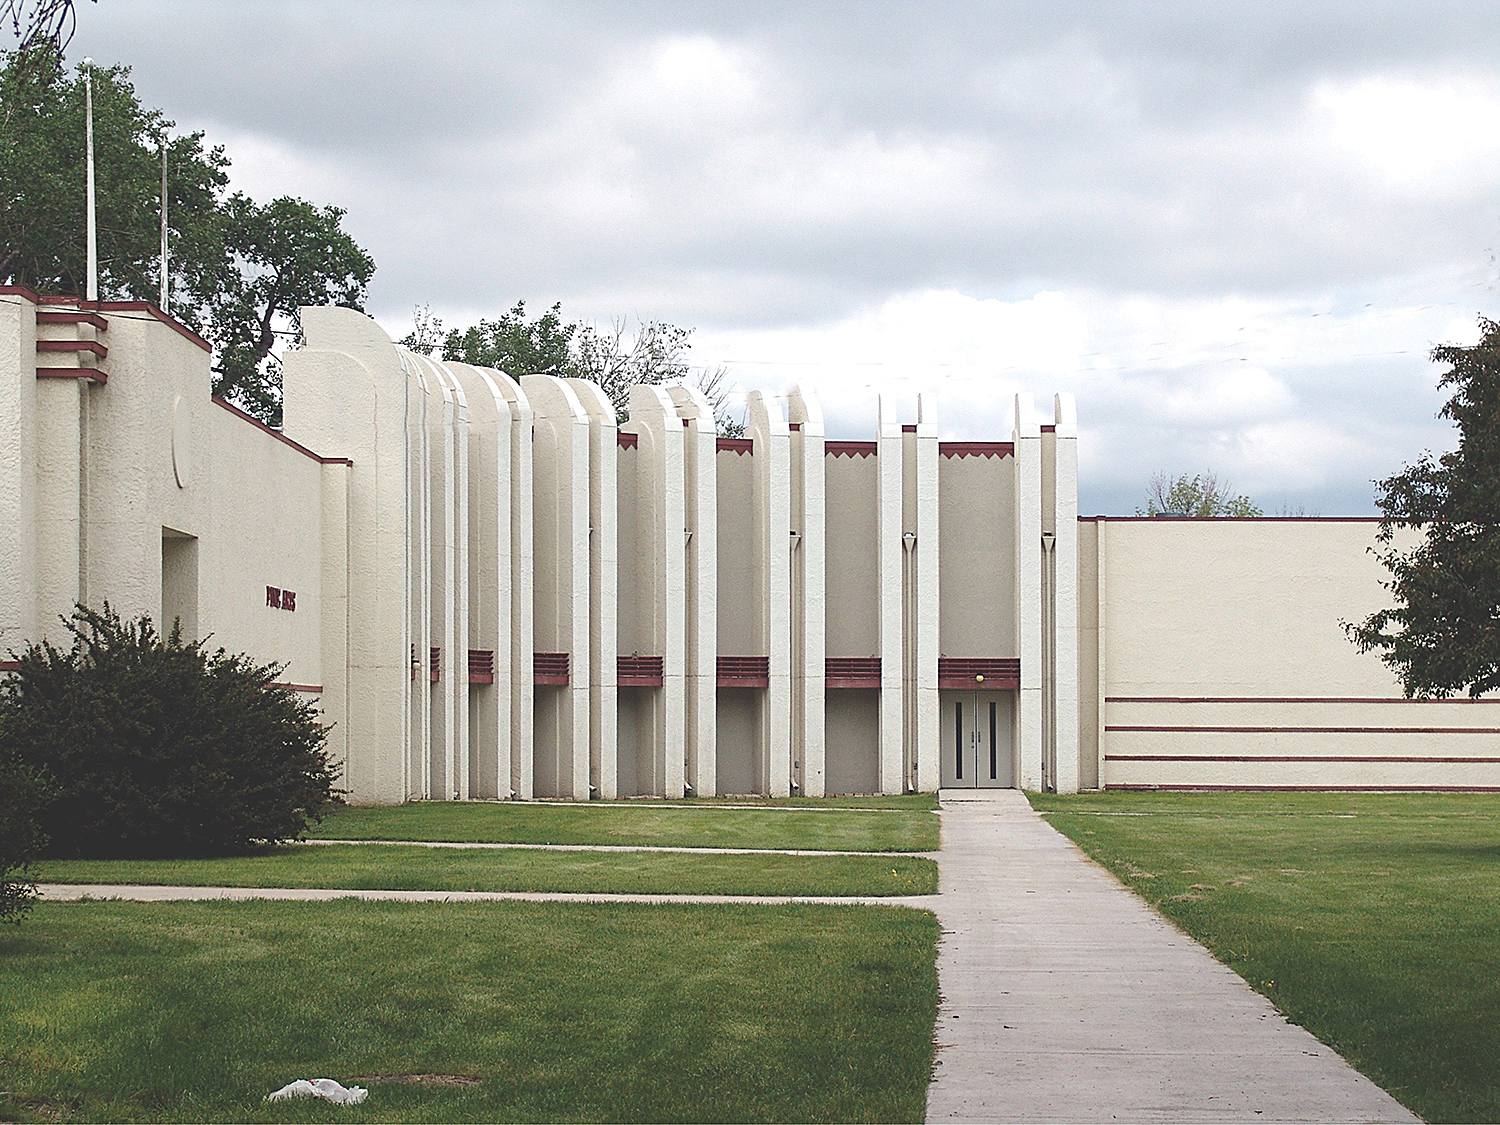 The Fine Arts Building is another example on the fairgrounds. Photo by Ben Chovanak.